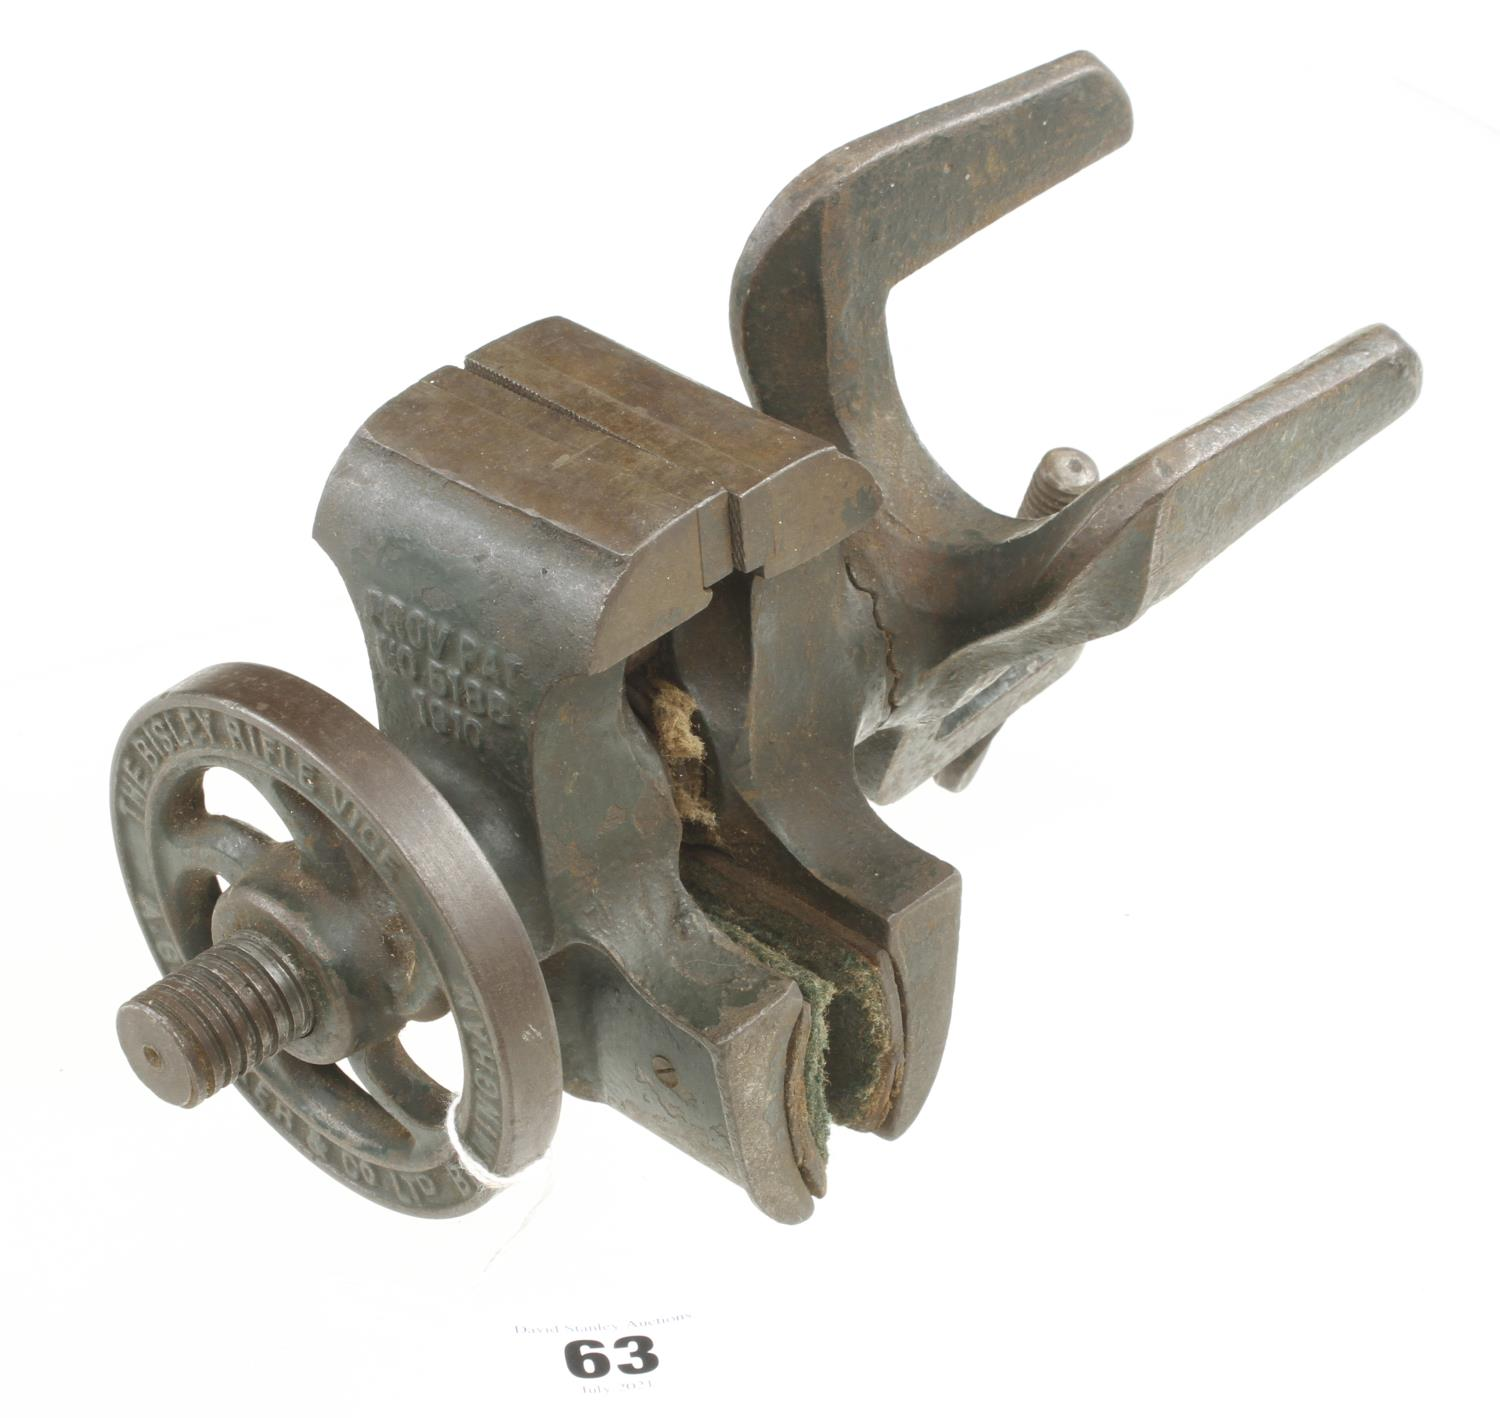 An adjustable vice with two jaws by A.G.PARKER & Co marked The Bristol Rifle Vice G+